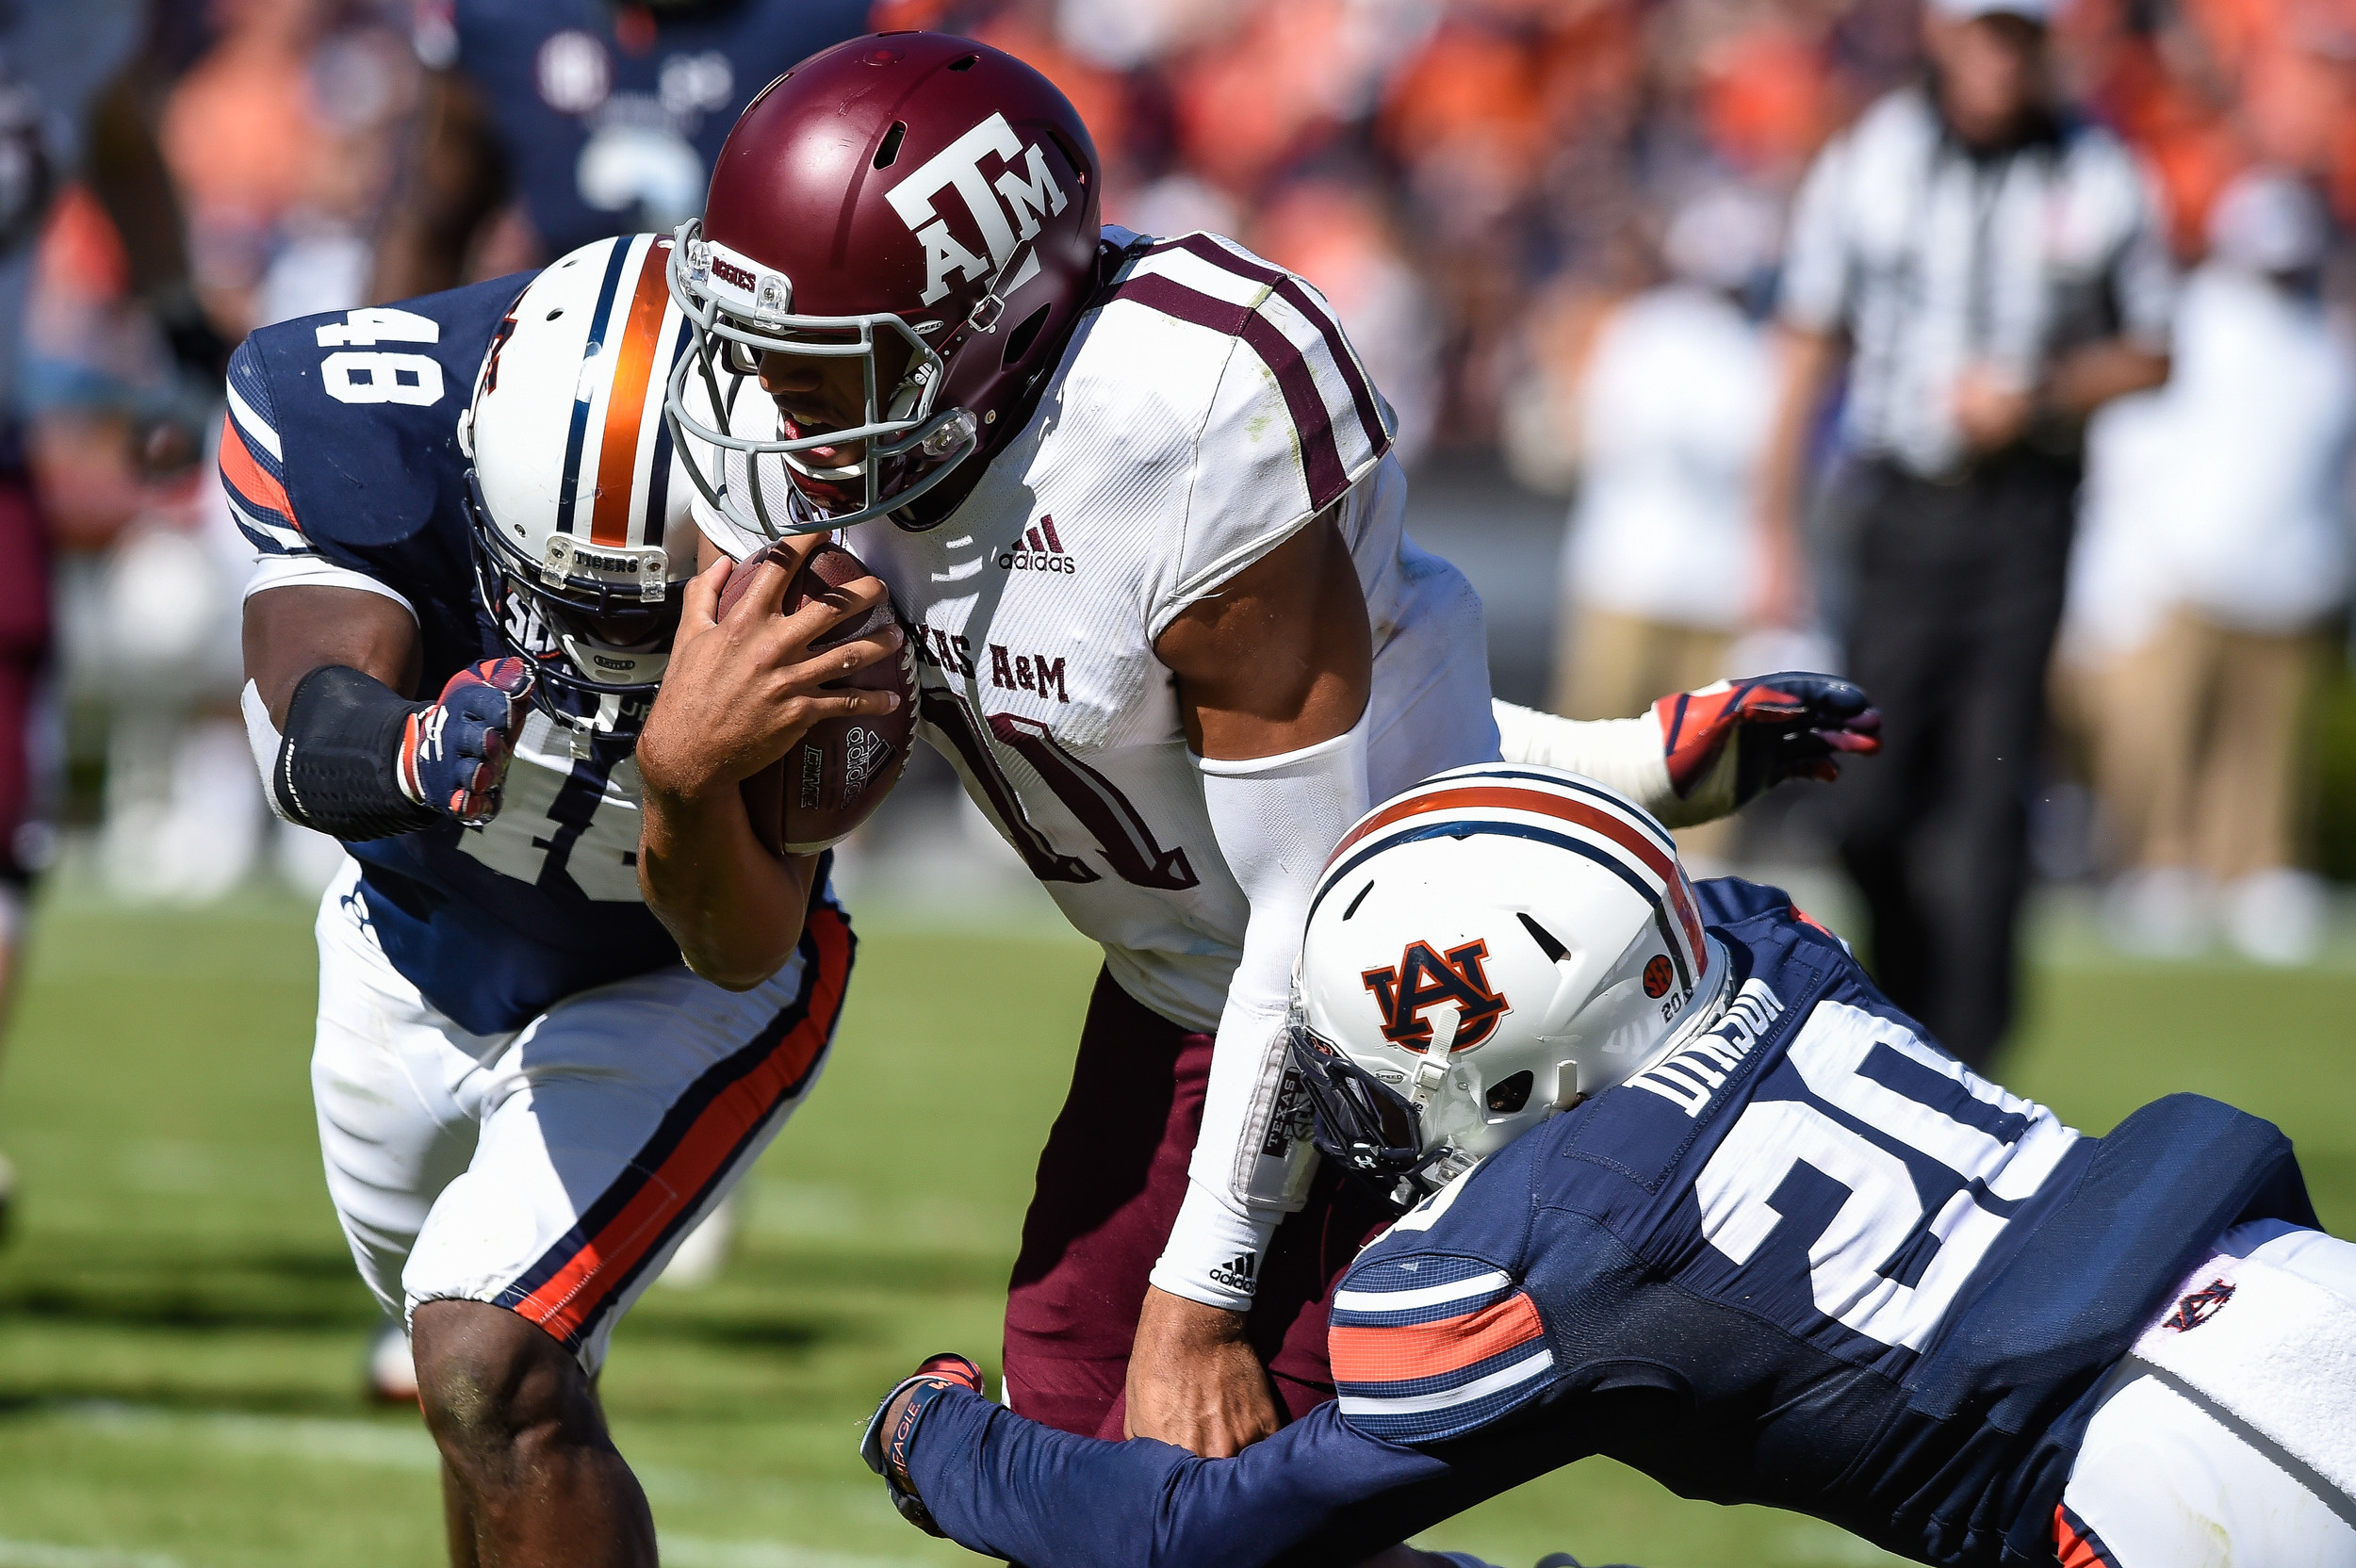 Auburn Tigers linebacker Montavious Atkinson (48) and  defensive back Jeremiah Dinson (20) tackle Texas A&M Aggies quarterback Kellen Mond (11) during the second half of an NCAA football game against the Texas A&M Aggies Saturday, November 3, 2018, at Jordan-Hare Stadium in Auburn, Ala. (Photo by Jeff Johnsey)